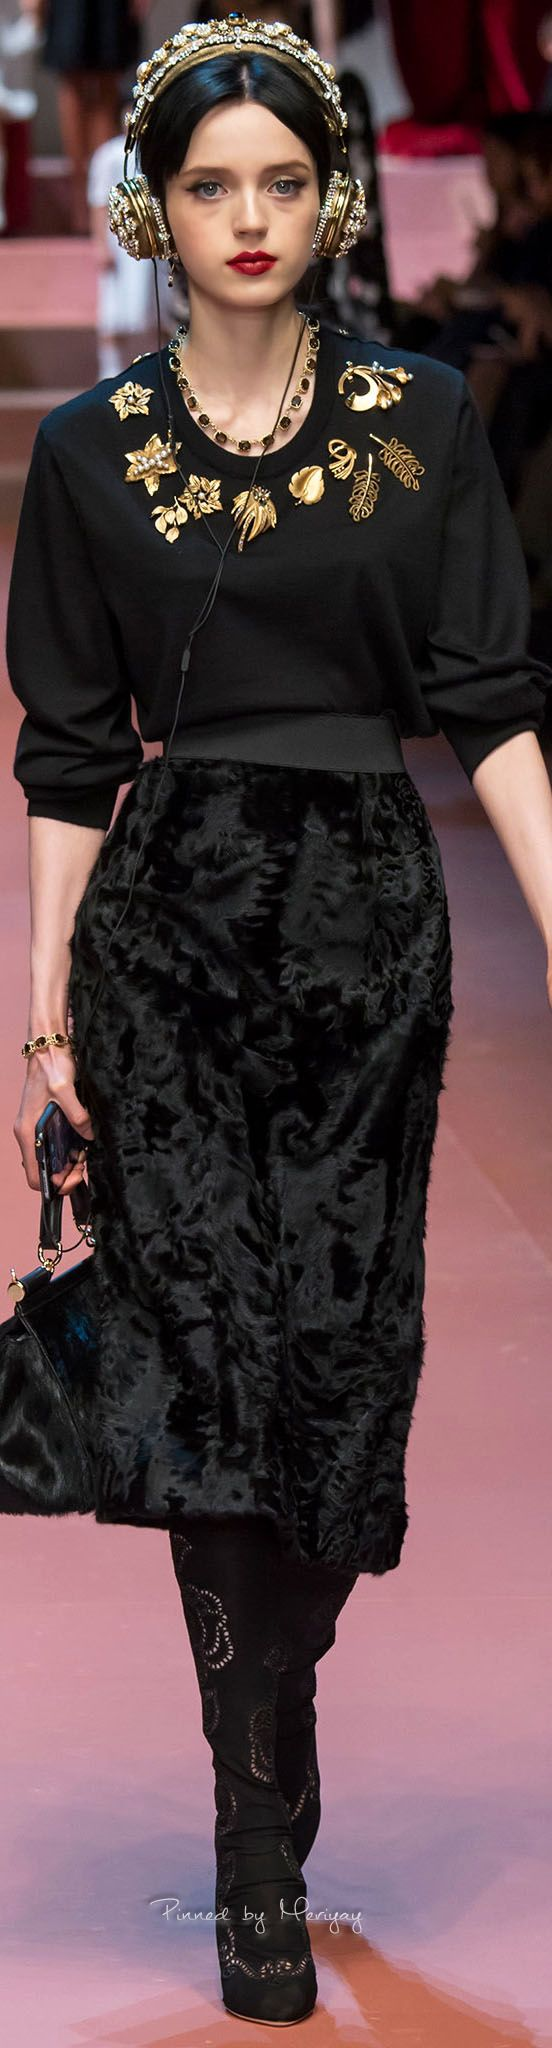 Salma Hayek Reveals Her Stance on Botox and the Skincare Cocktail She Swears By